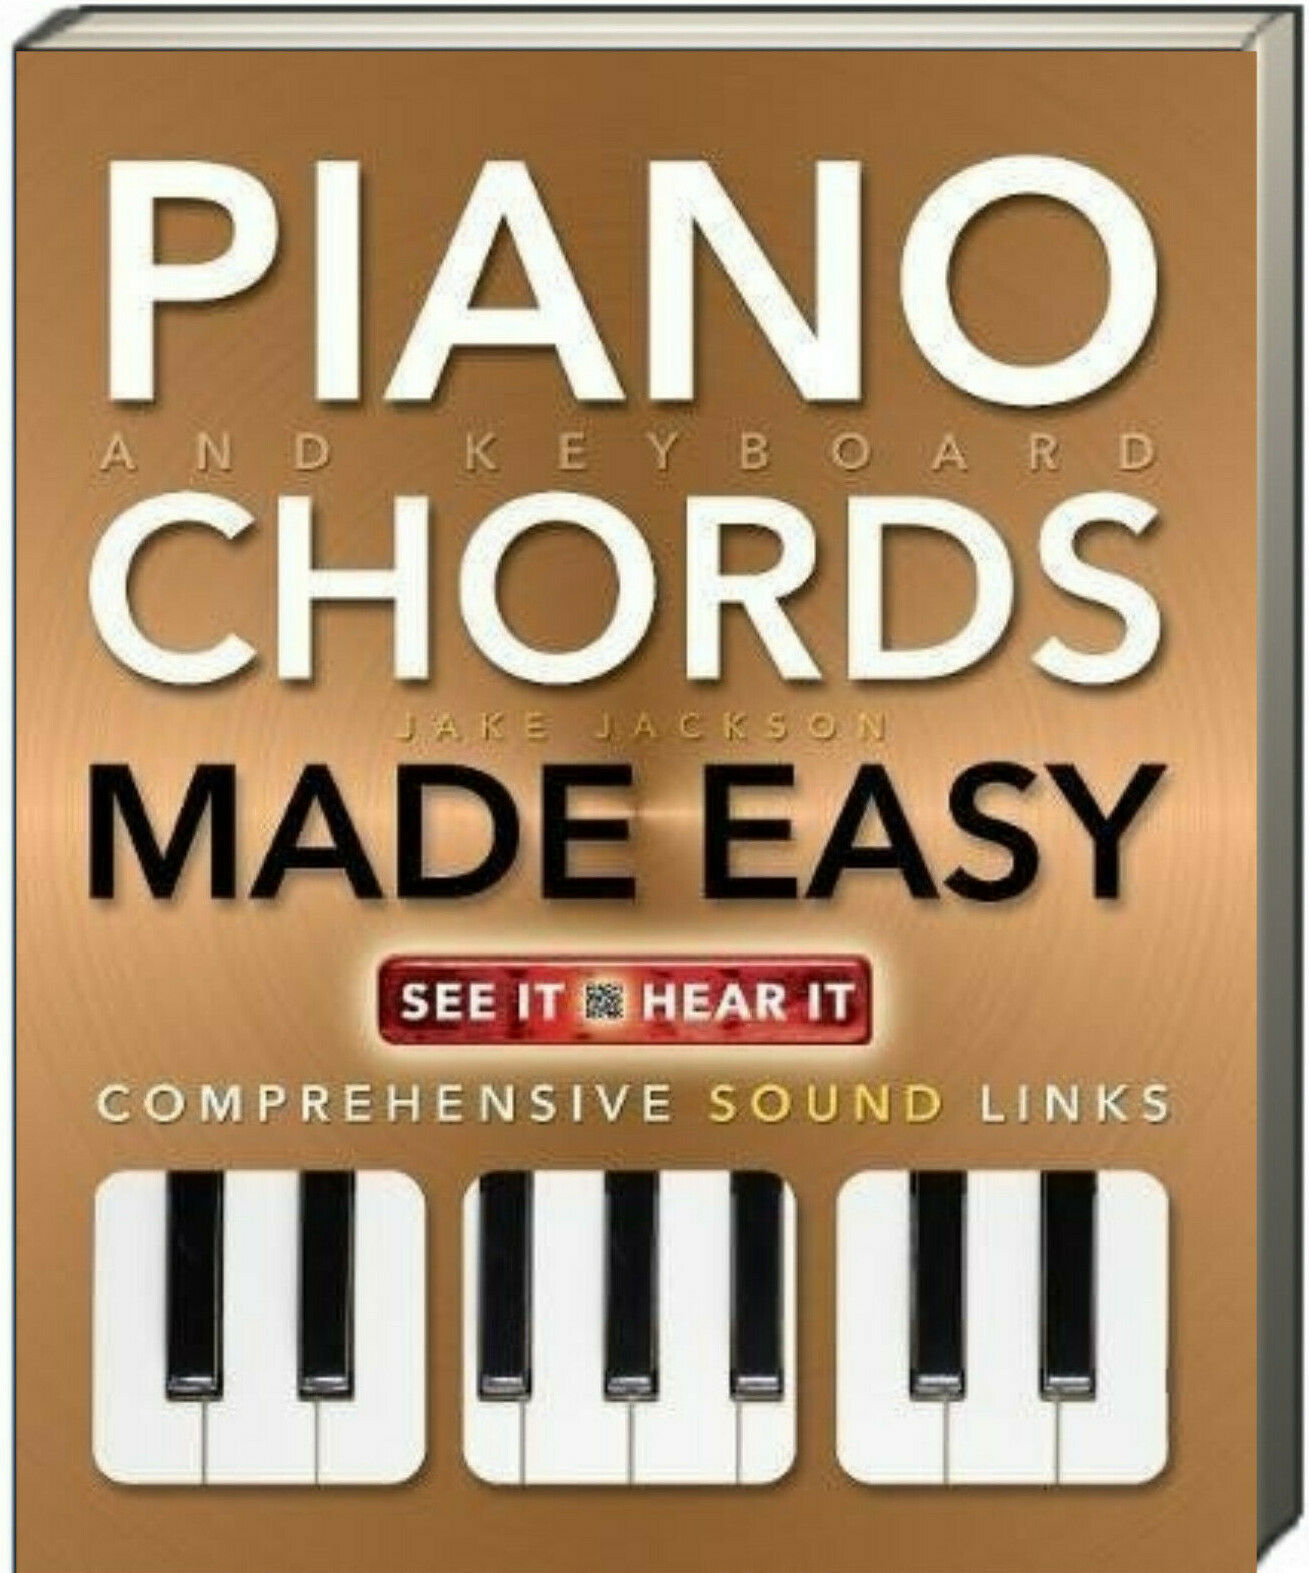 Piano and Keyboard Chords Made Easy by Jake Jackson  NEW